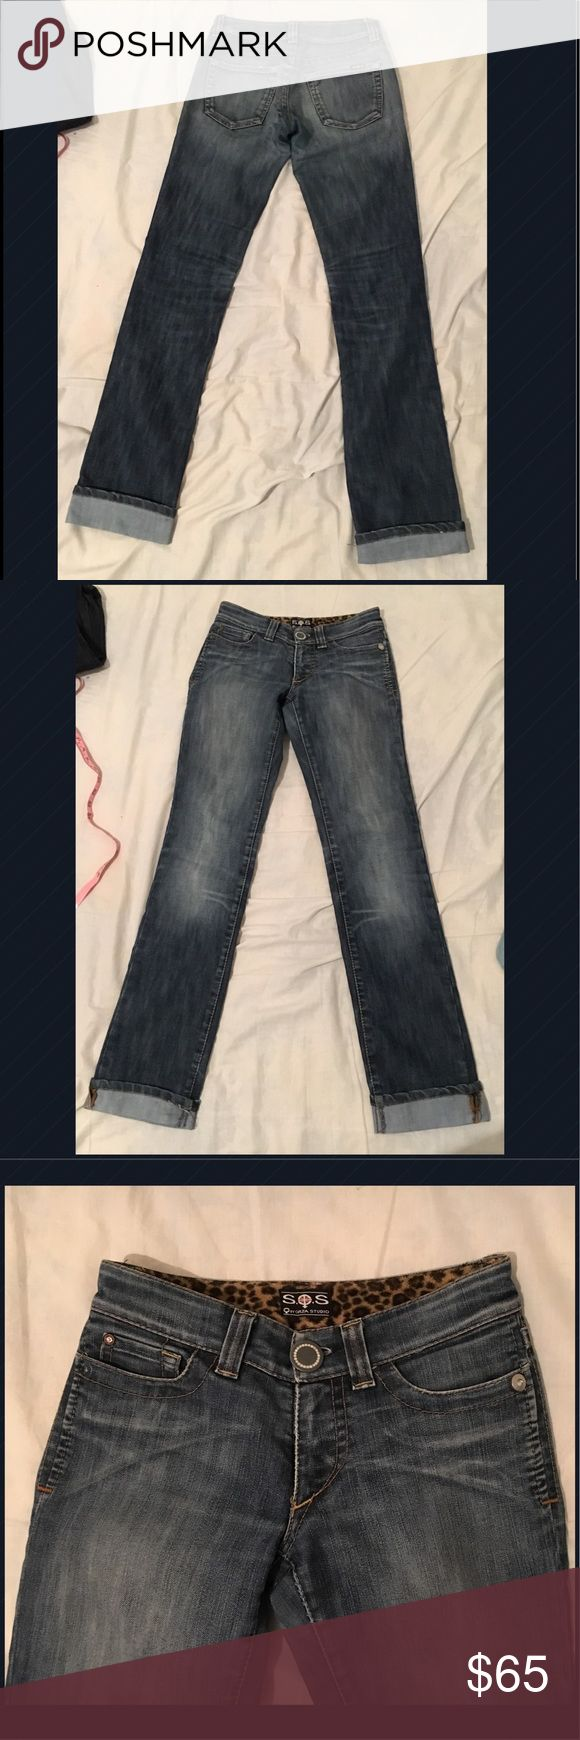 "S.O.S by Orza Studio jeans Straight leg blue jeans with sequined detailed front button. 40 & 1/2"" length to bottom, 31"" inseam, without cuffs it adds about 2 & 1/2"", waist is 14"". S.O.S by Orza Studio Jeans Straight Leg"